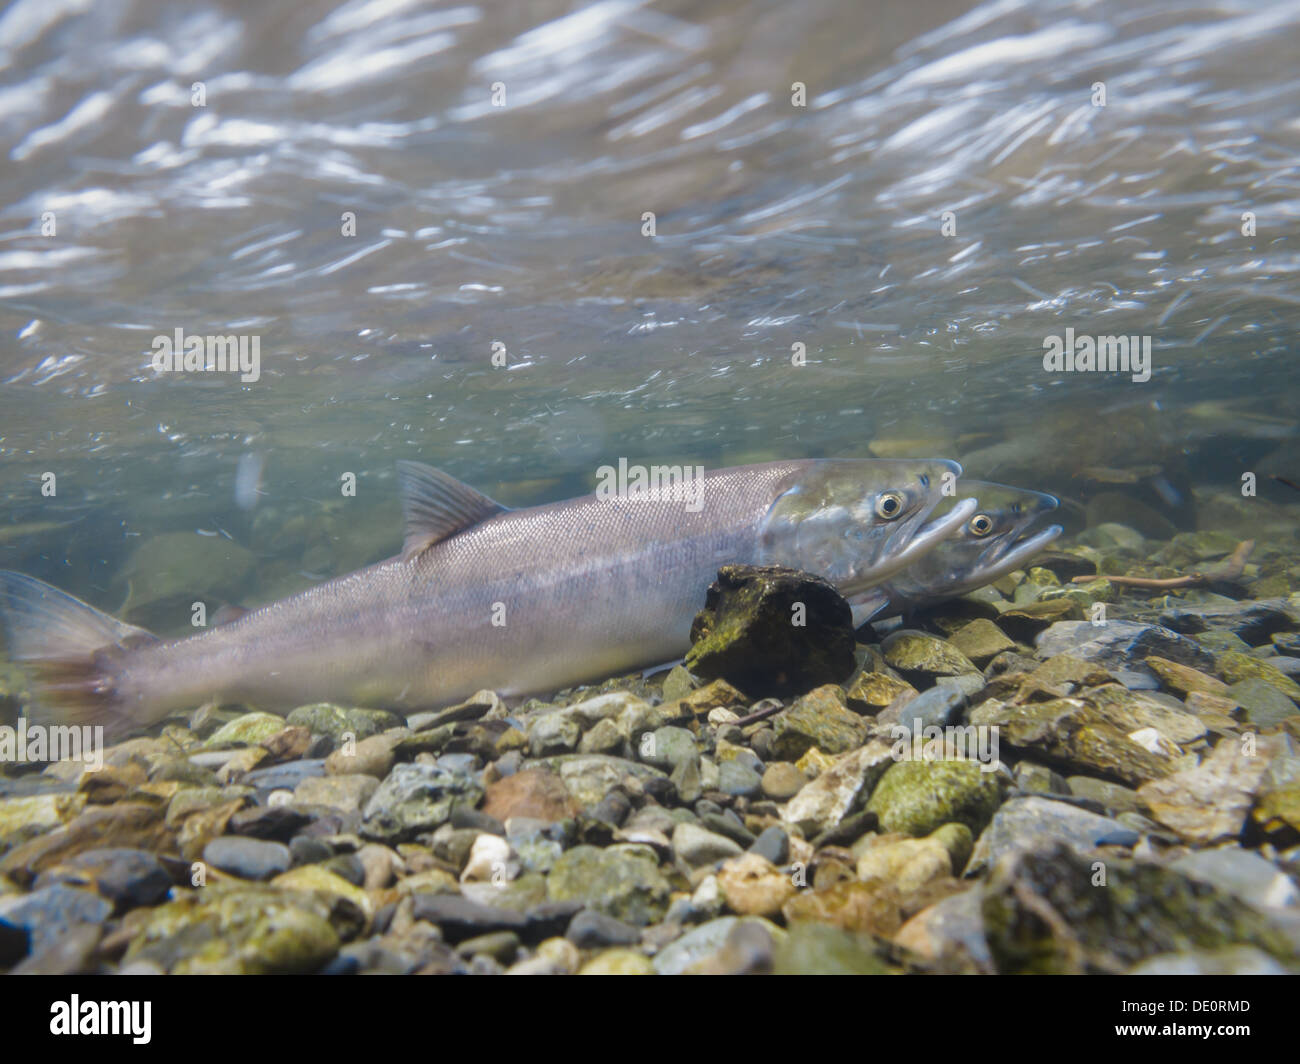 Close-up of two spawning salmon in shallow water in a river in Alaska, USA - Stock Image